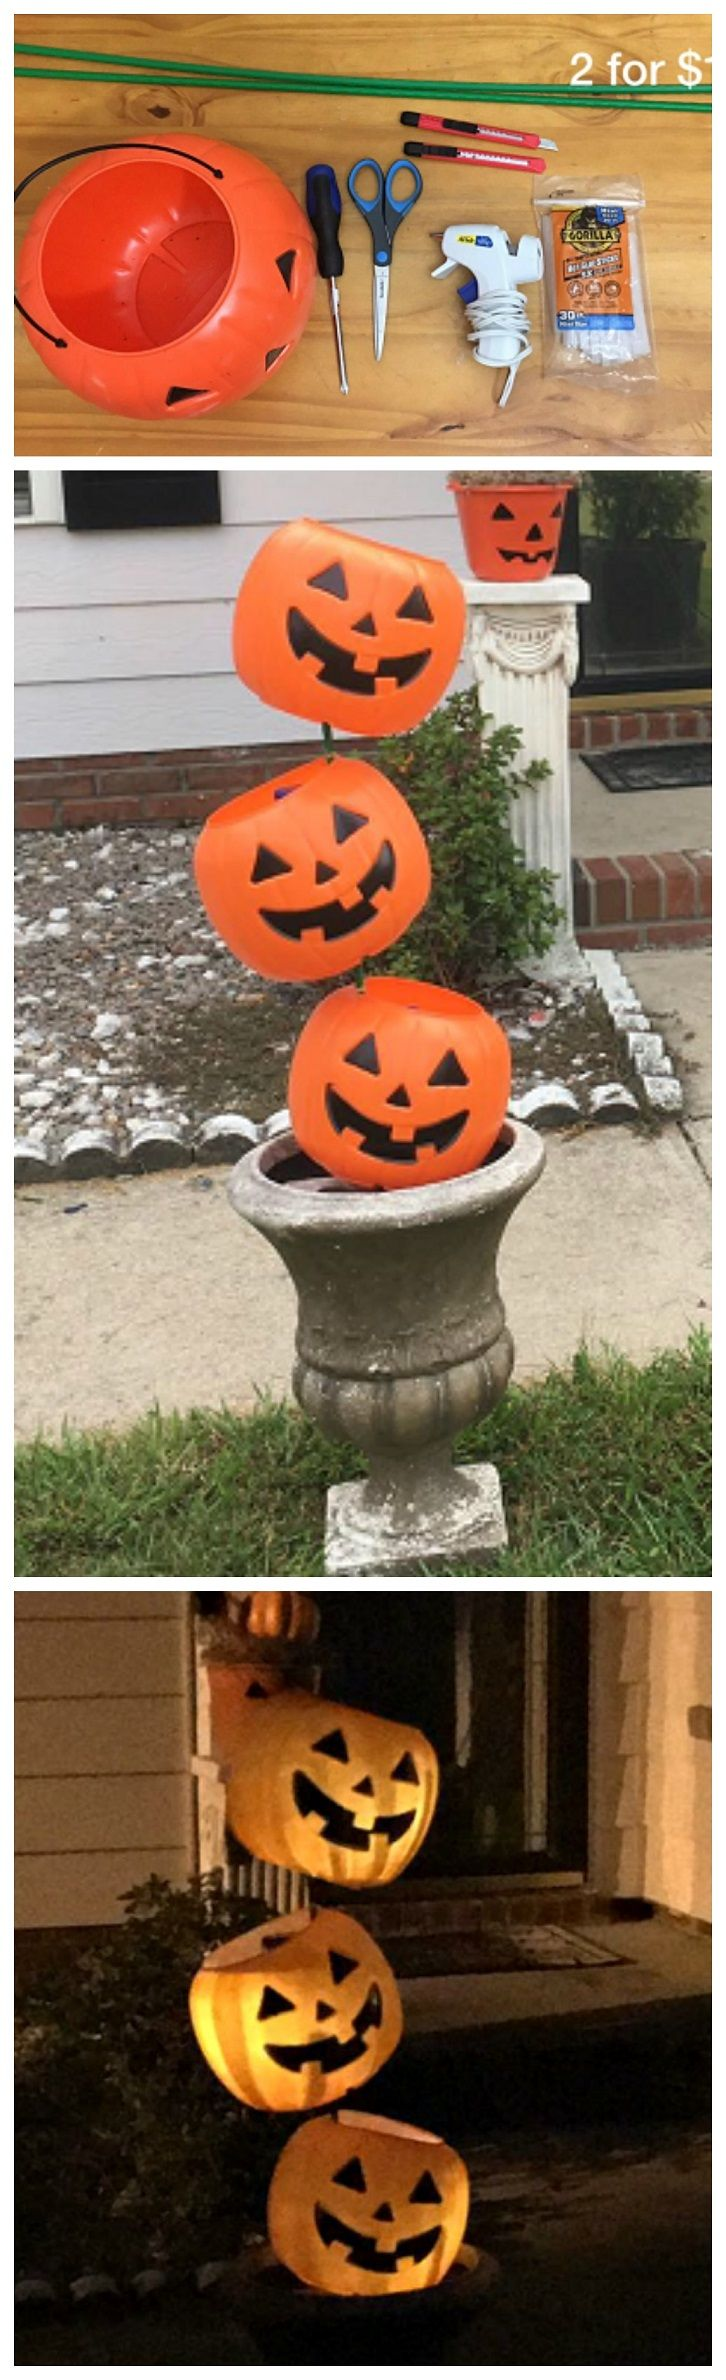 make a plastic pumpkin pail tipsy decoration for halloween such a cheap and easy craft